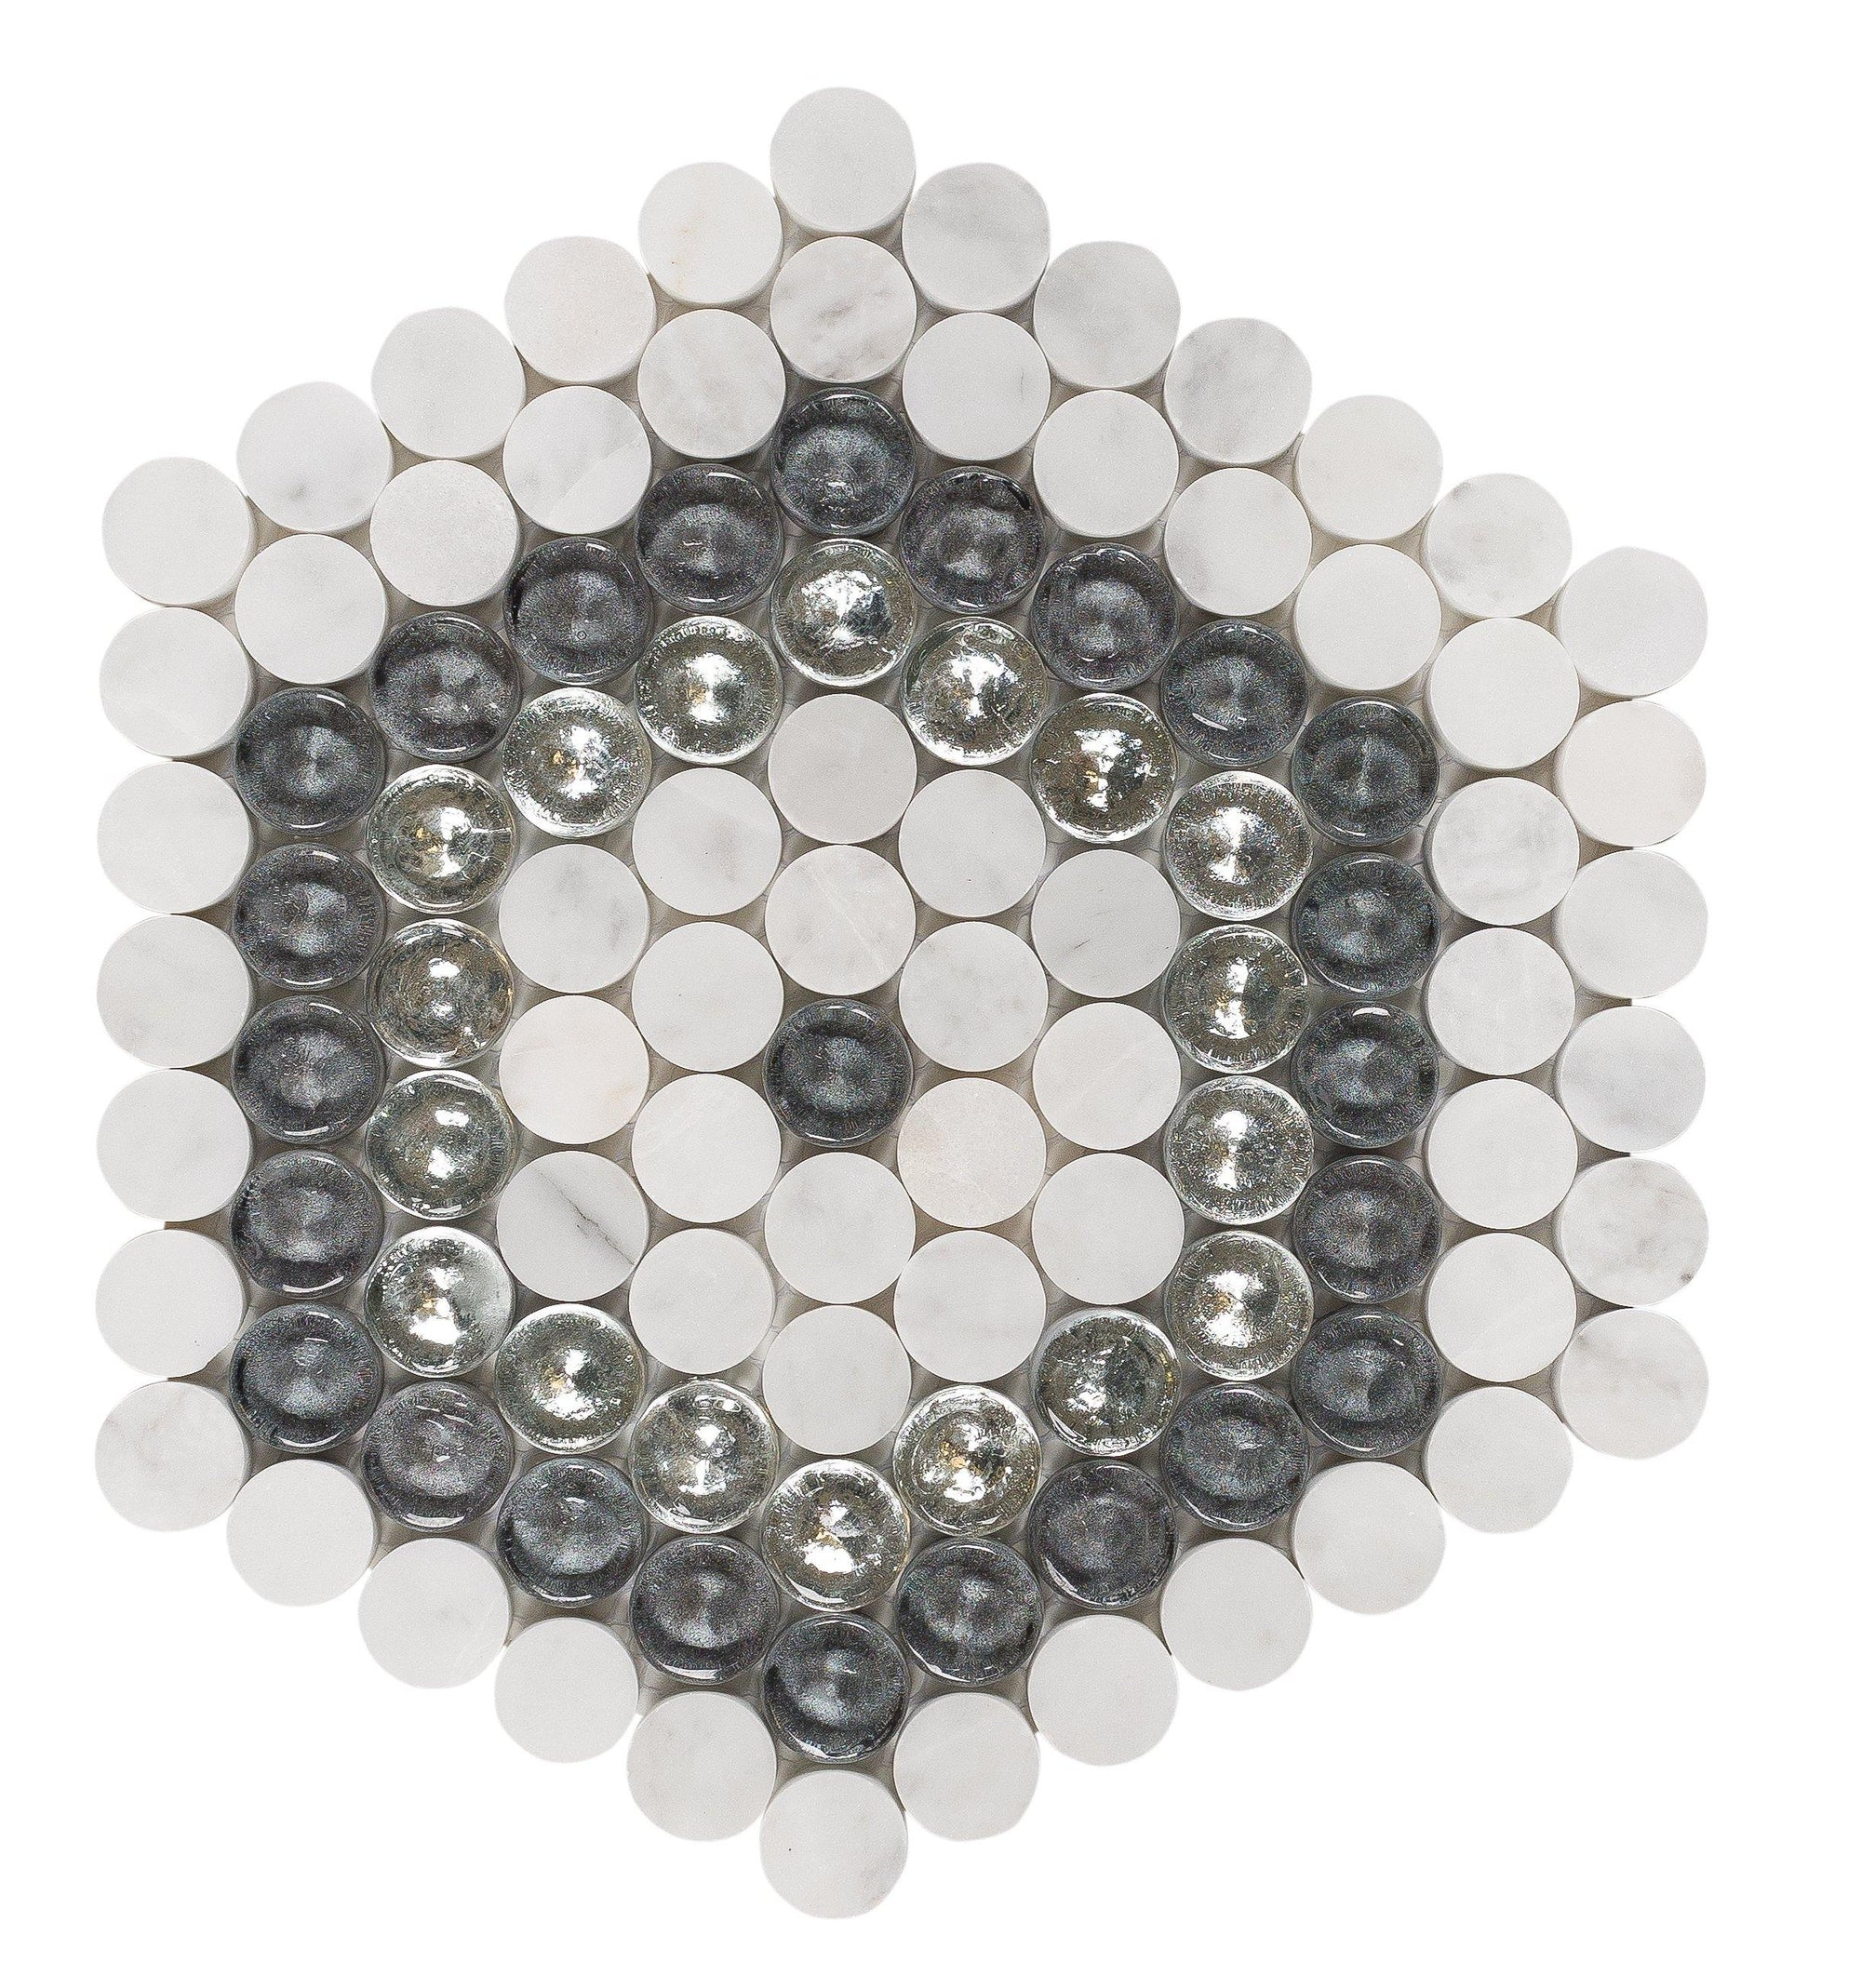 Howard Designer Hexagon Mosaic